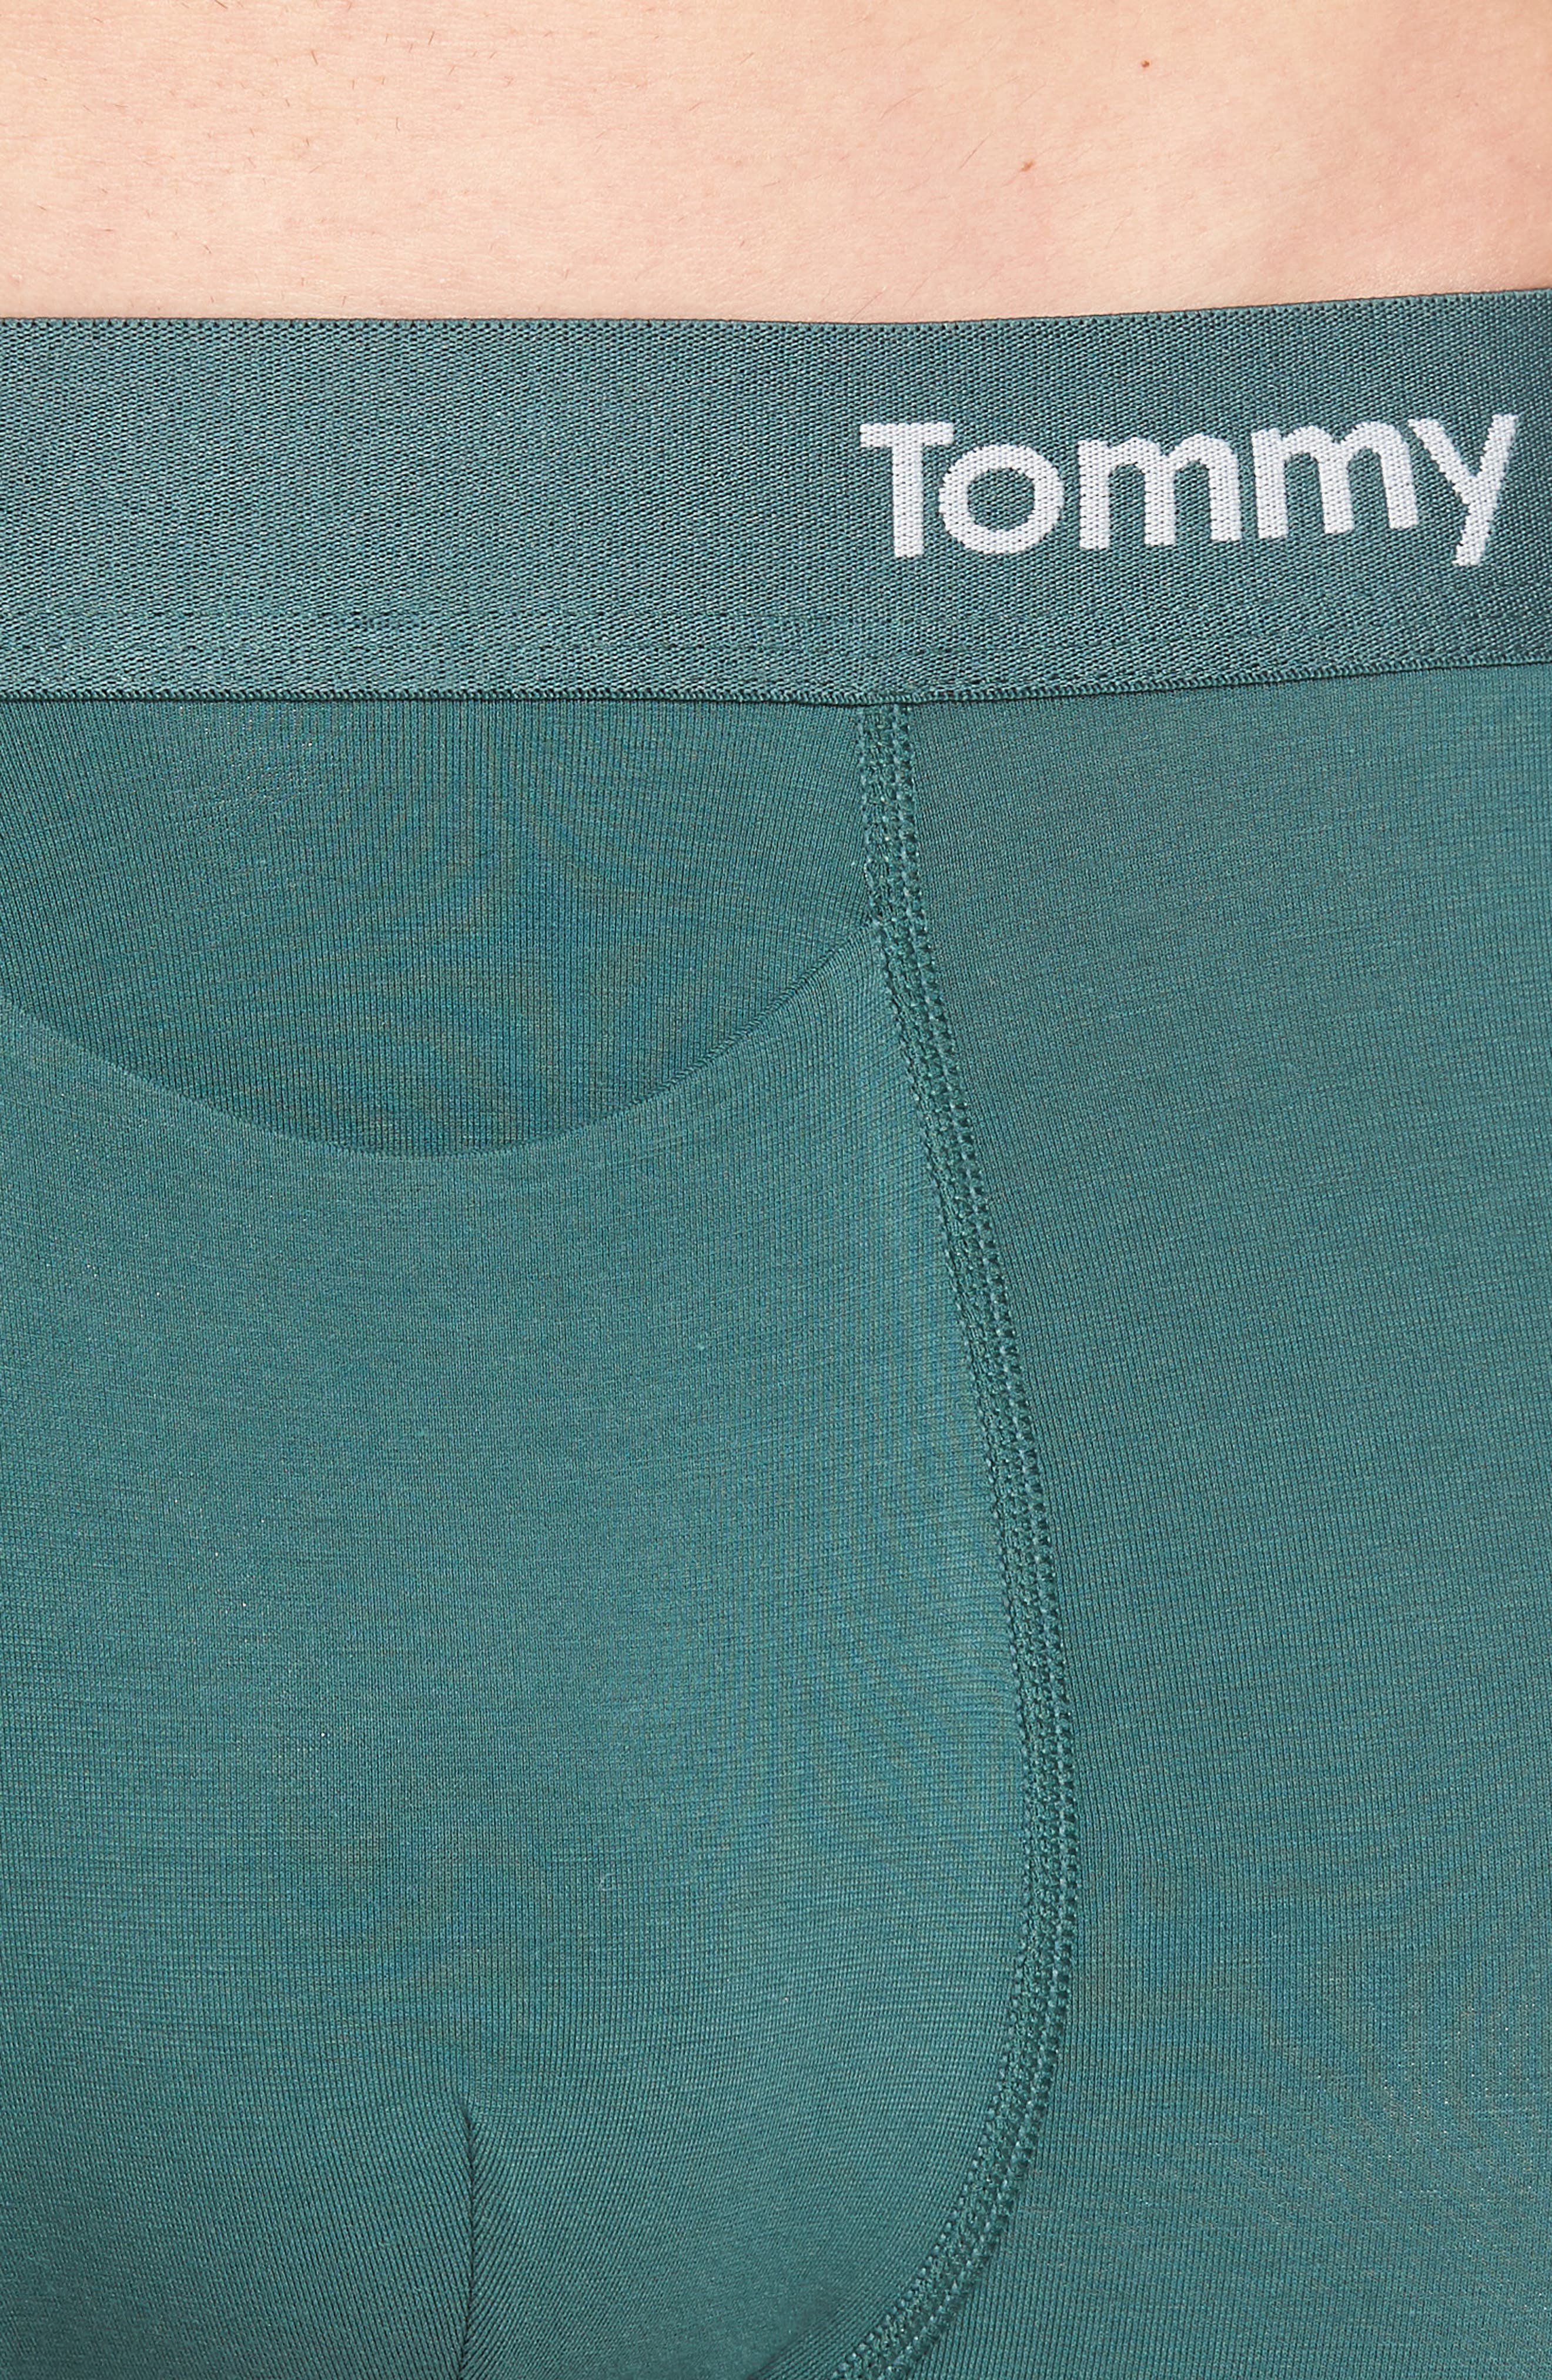 Cool Cotton Tonal Trunks,                             Alternate thumbnail 4, color,                             310